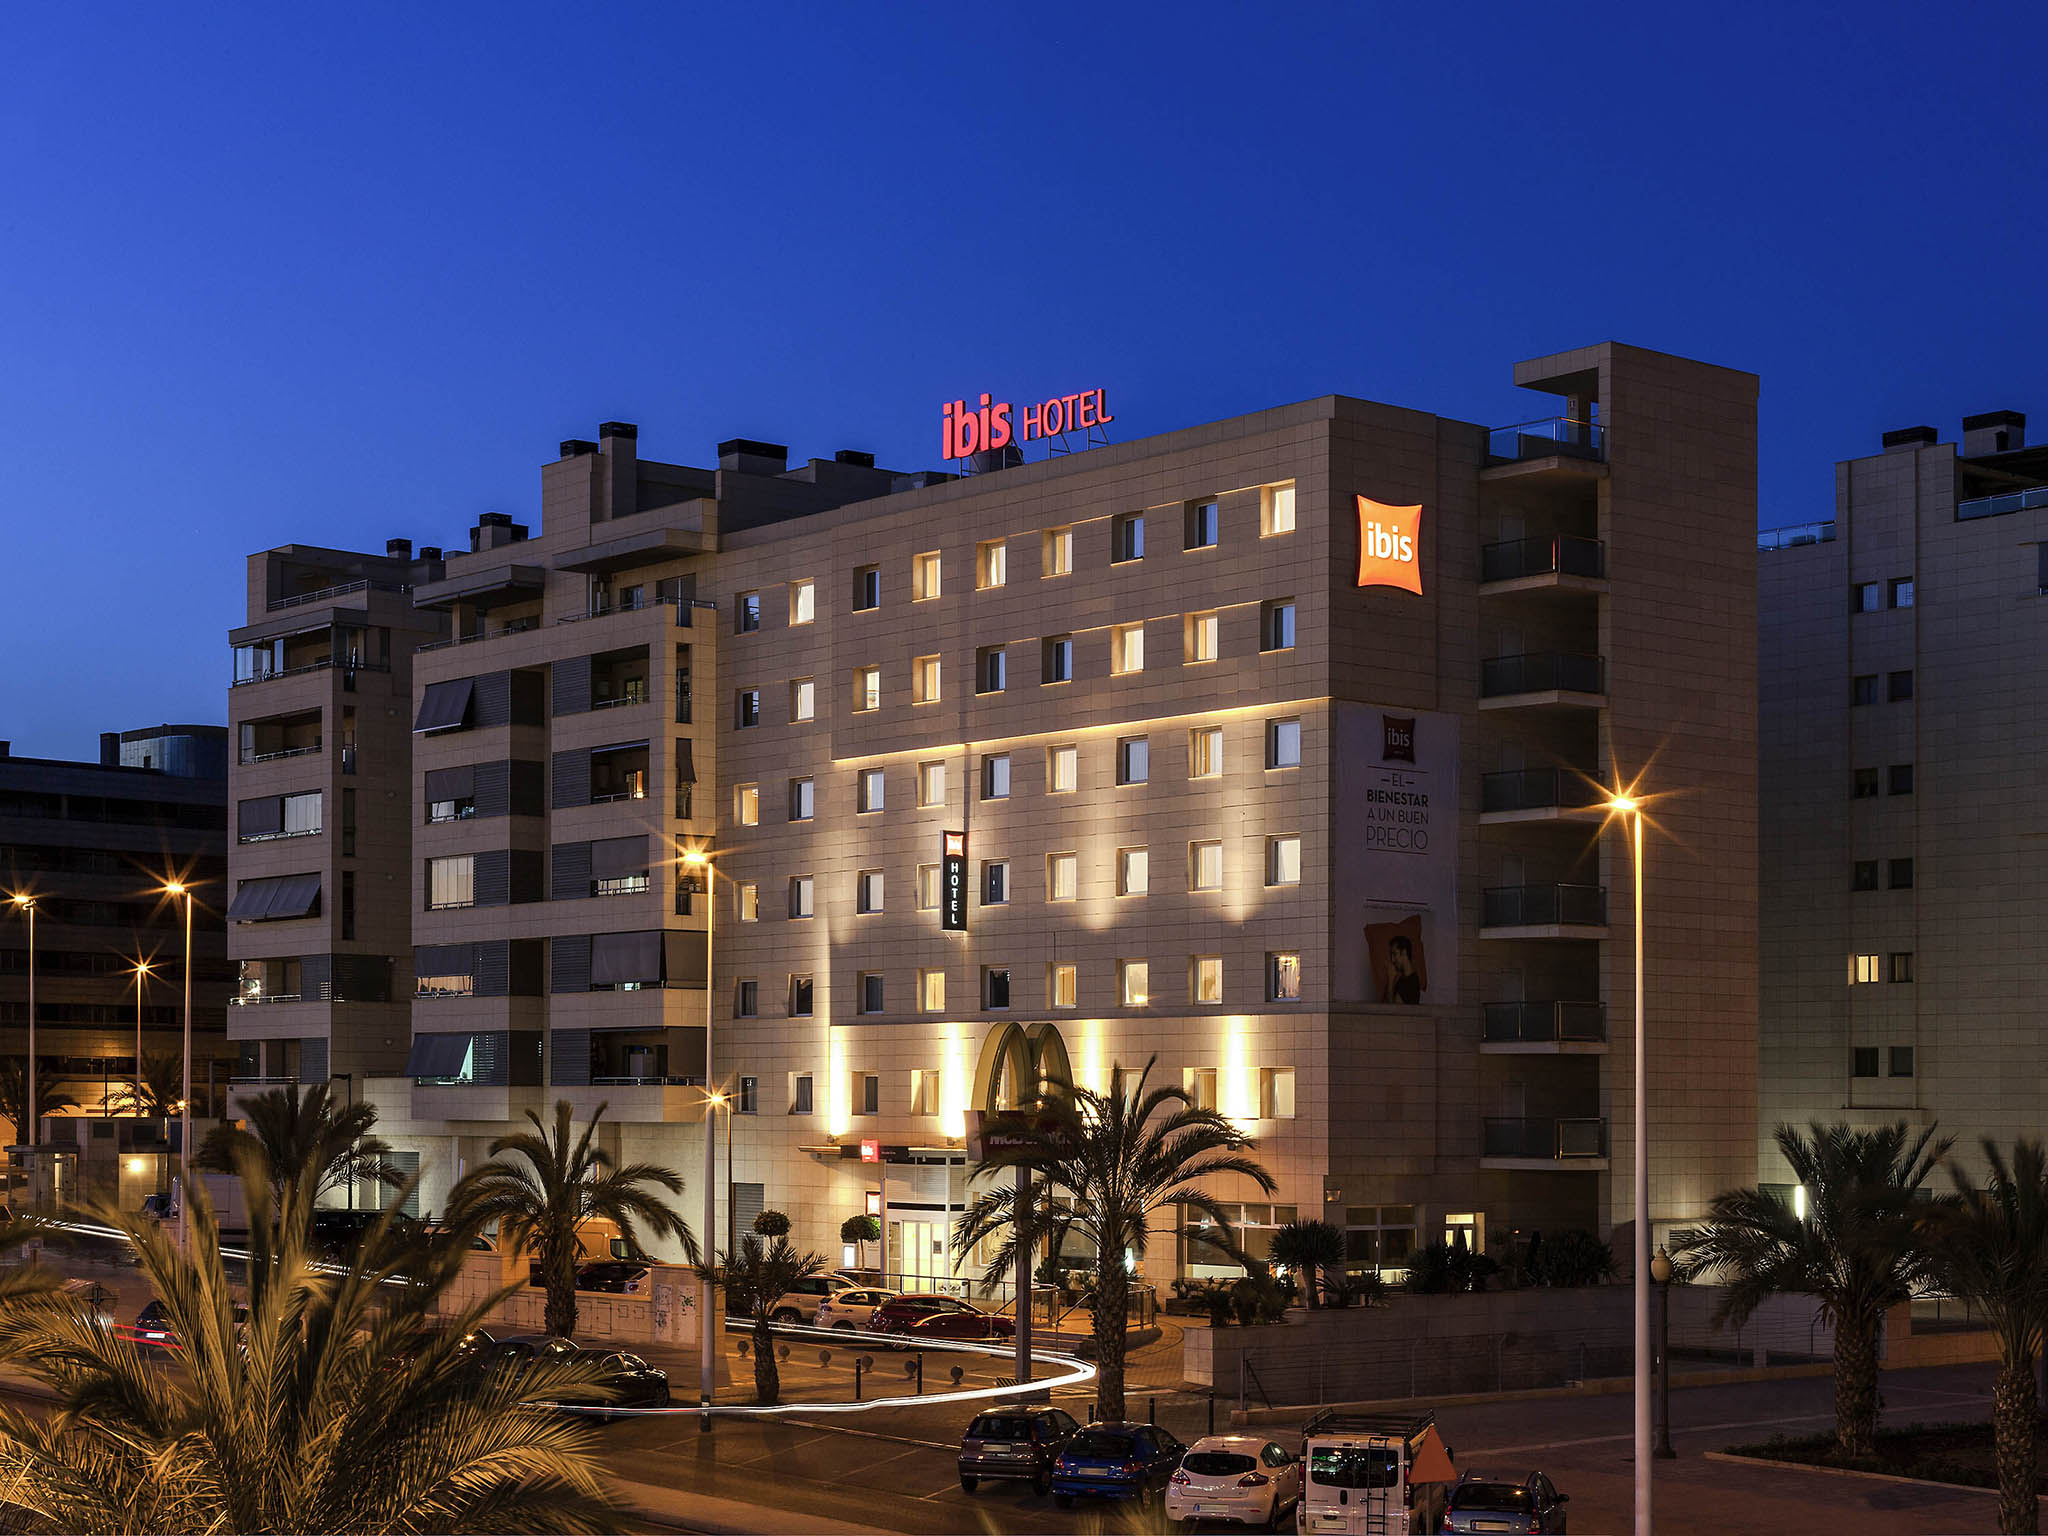 Hotel in elche book your ibis hotel in elche alicante for Hotel diseno alicante